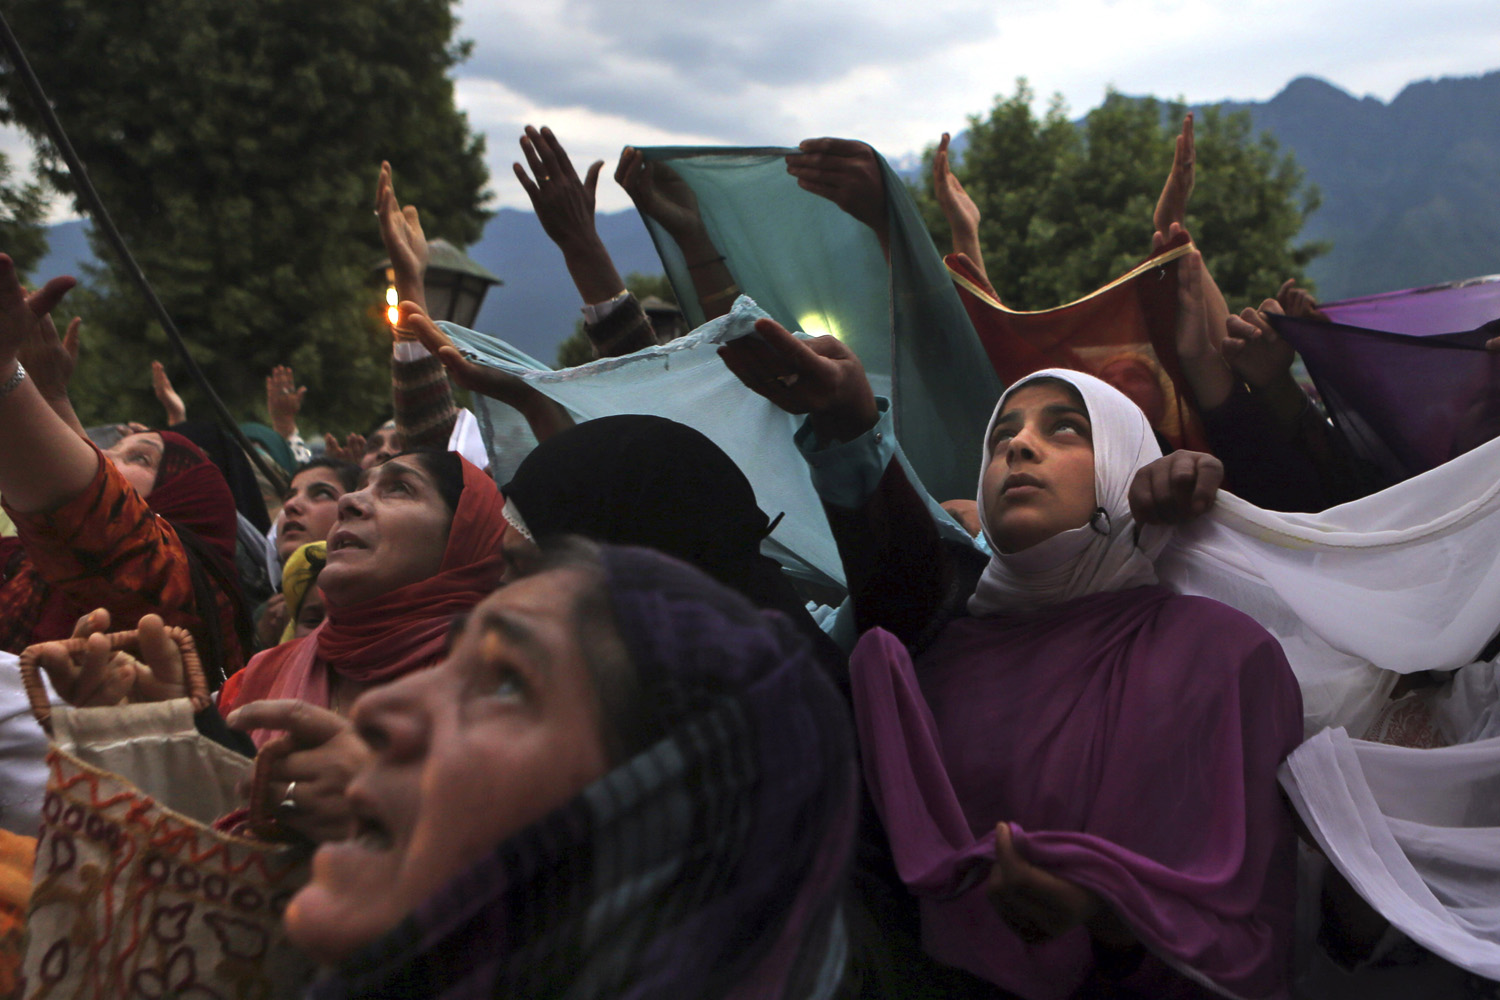 May 30, 2014. Kashmiri Muslim women devotees pray as a head priest displays a holy relic believed to be the hair from the beard of Prophet Mohammed, on Mehraj-u-Alam, at the Hazratbal Shrine on the outskirts of Srinagar, India.